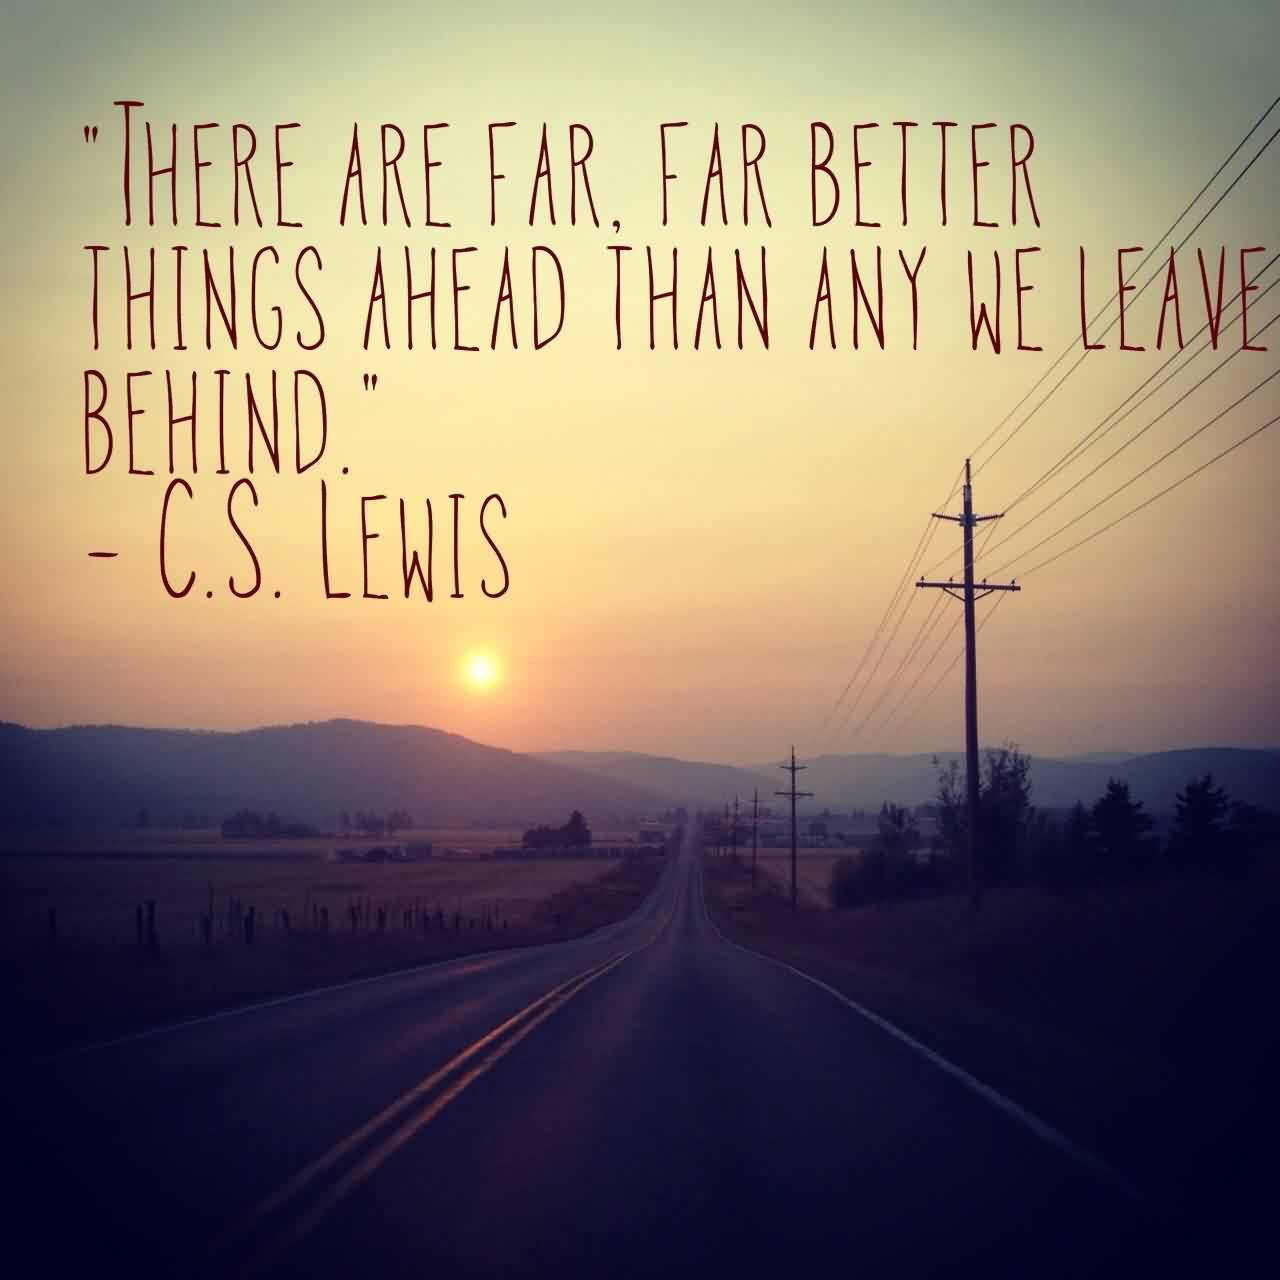 Best Life Quote Tumblr There Are Far Better Things Ahead